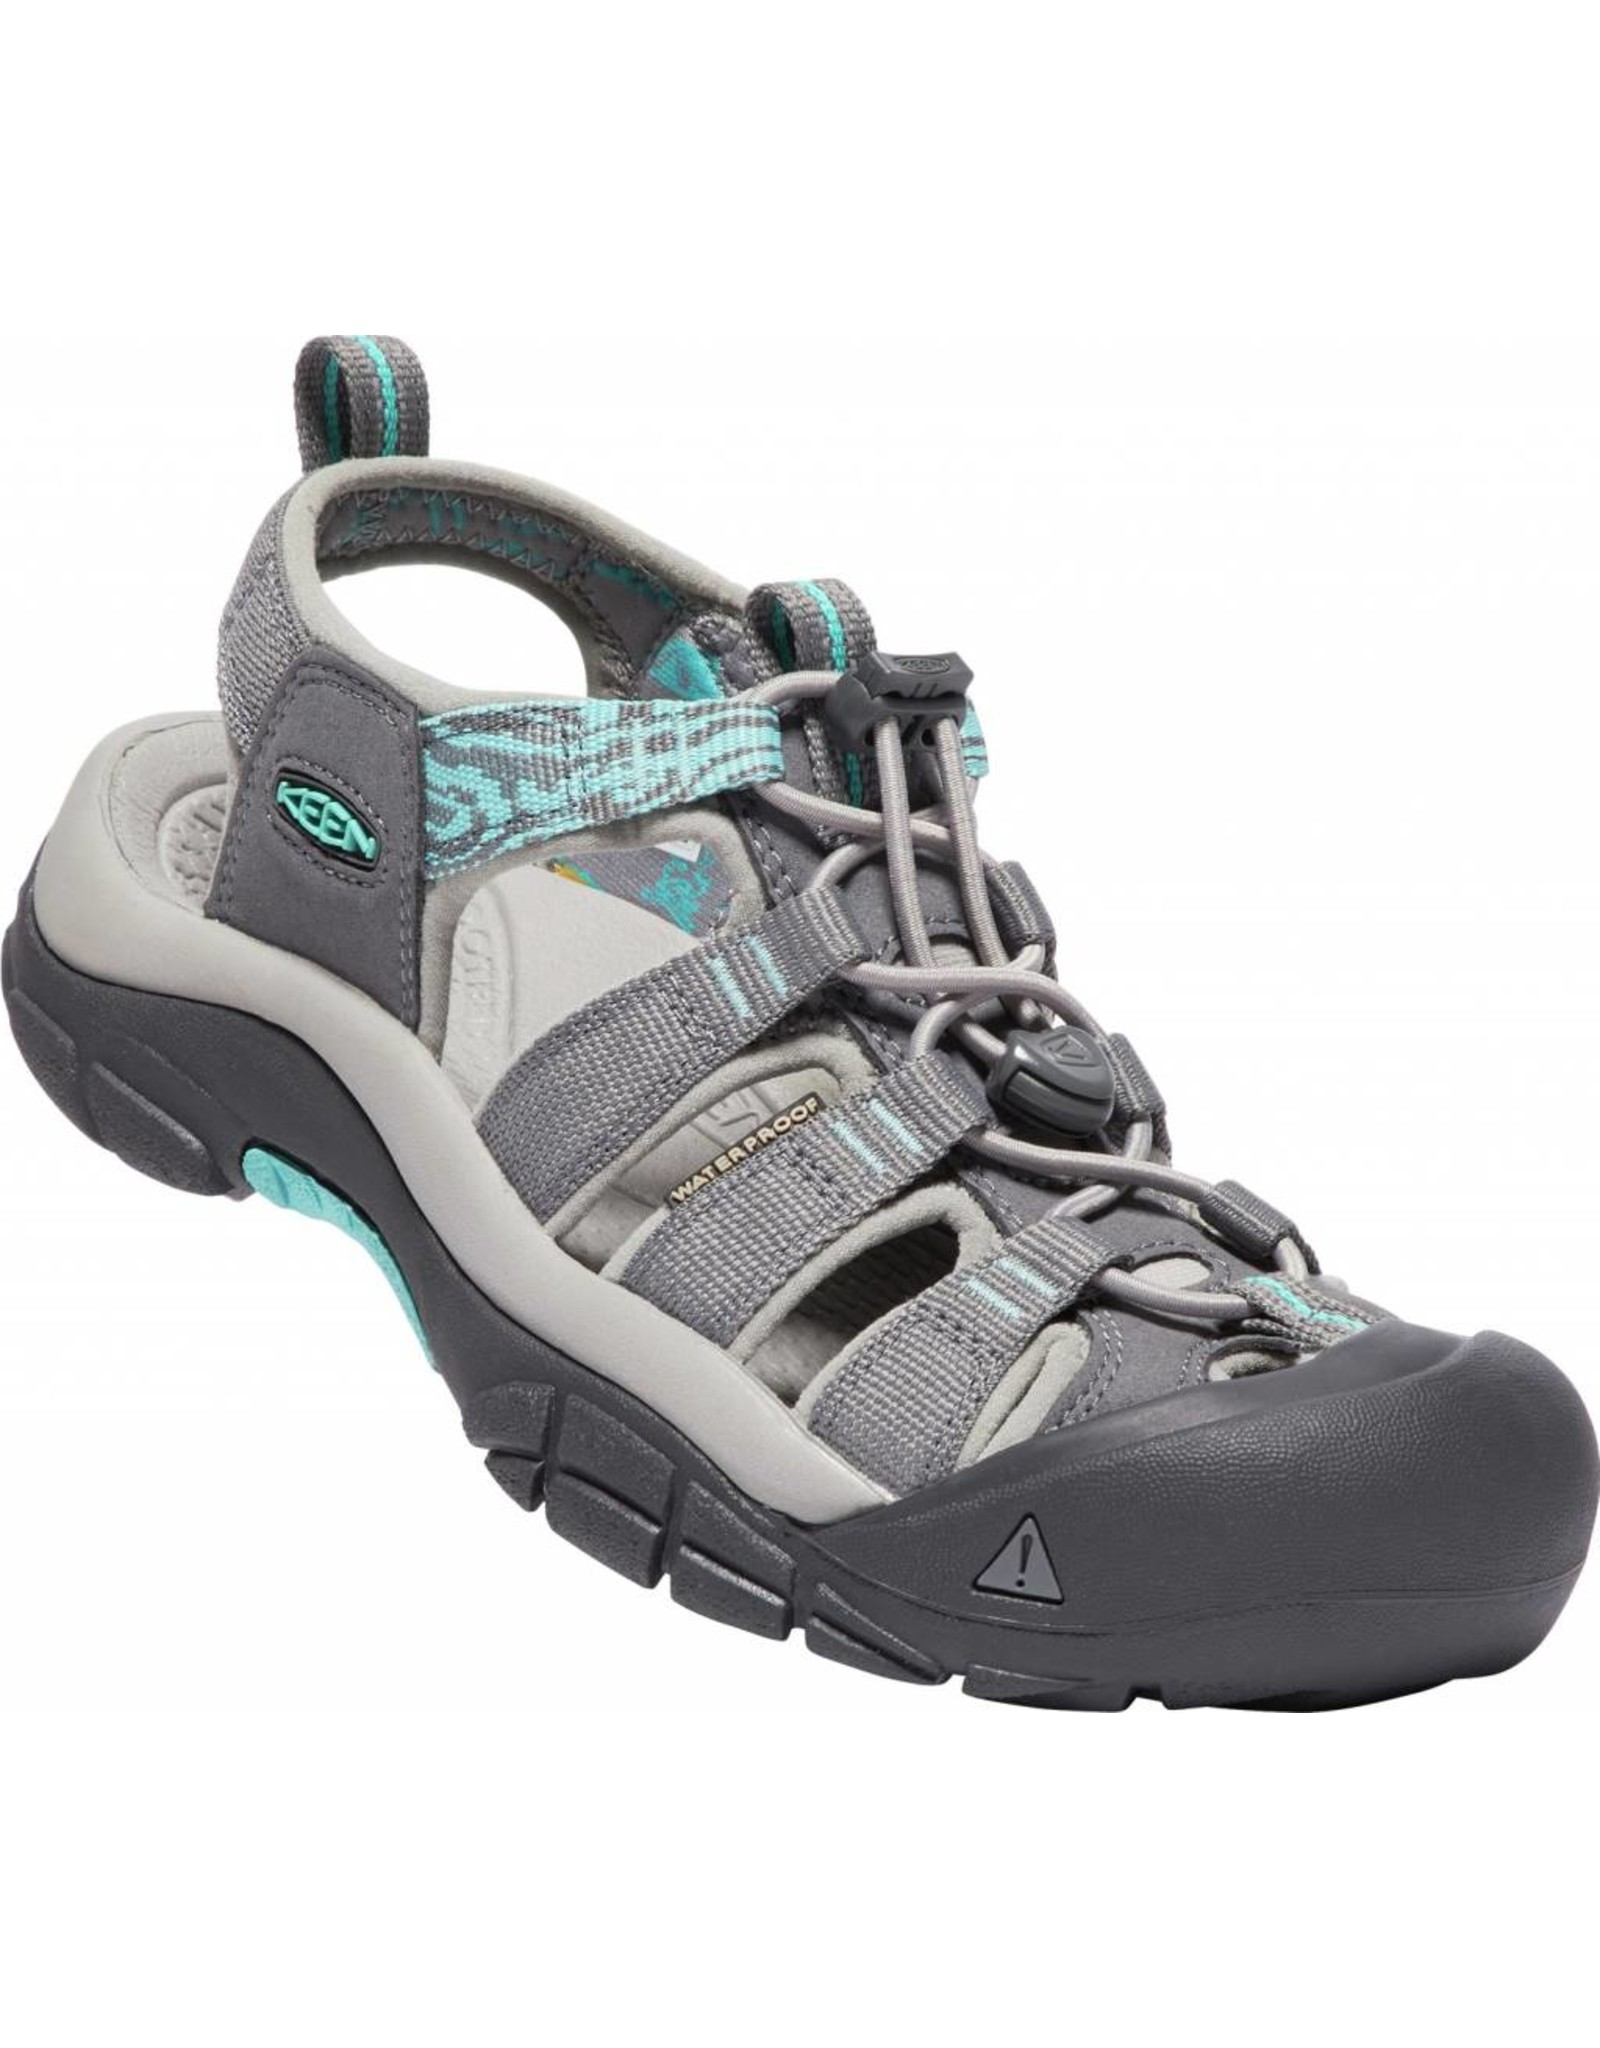 Keen Women's Newport Hydro - 20ps